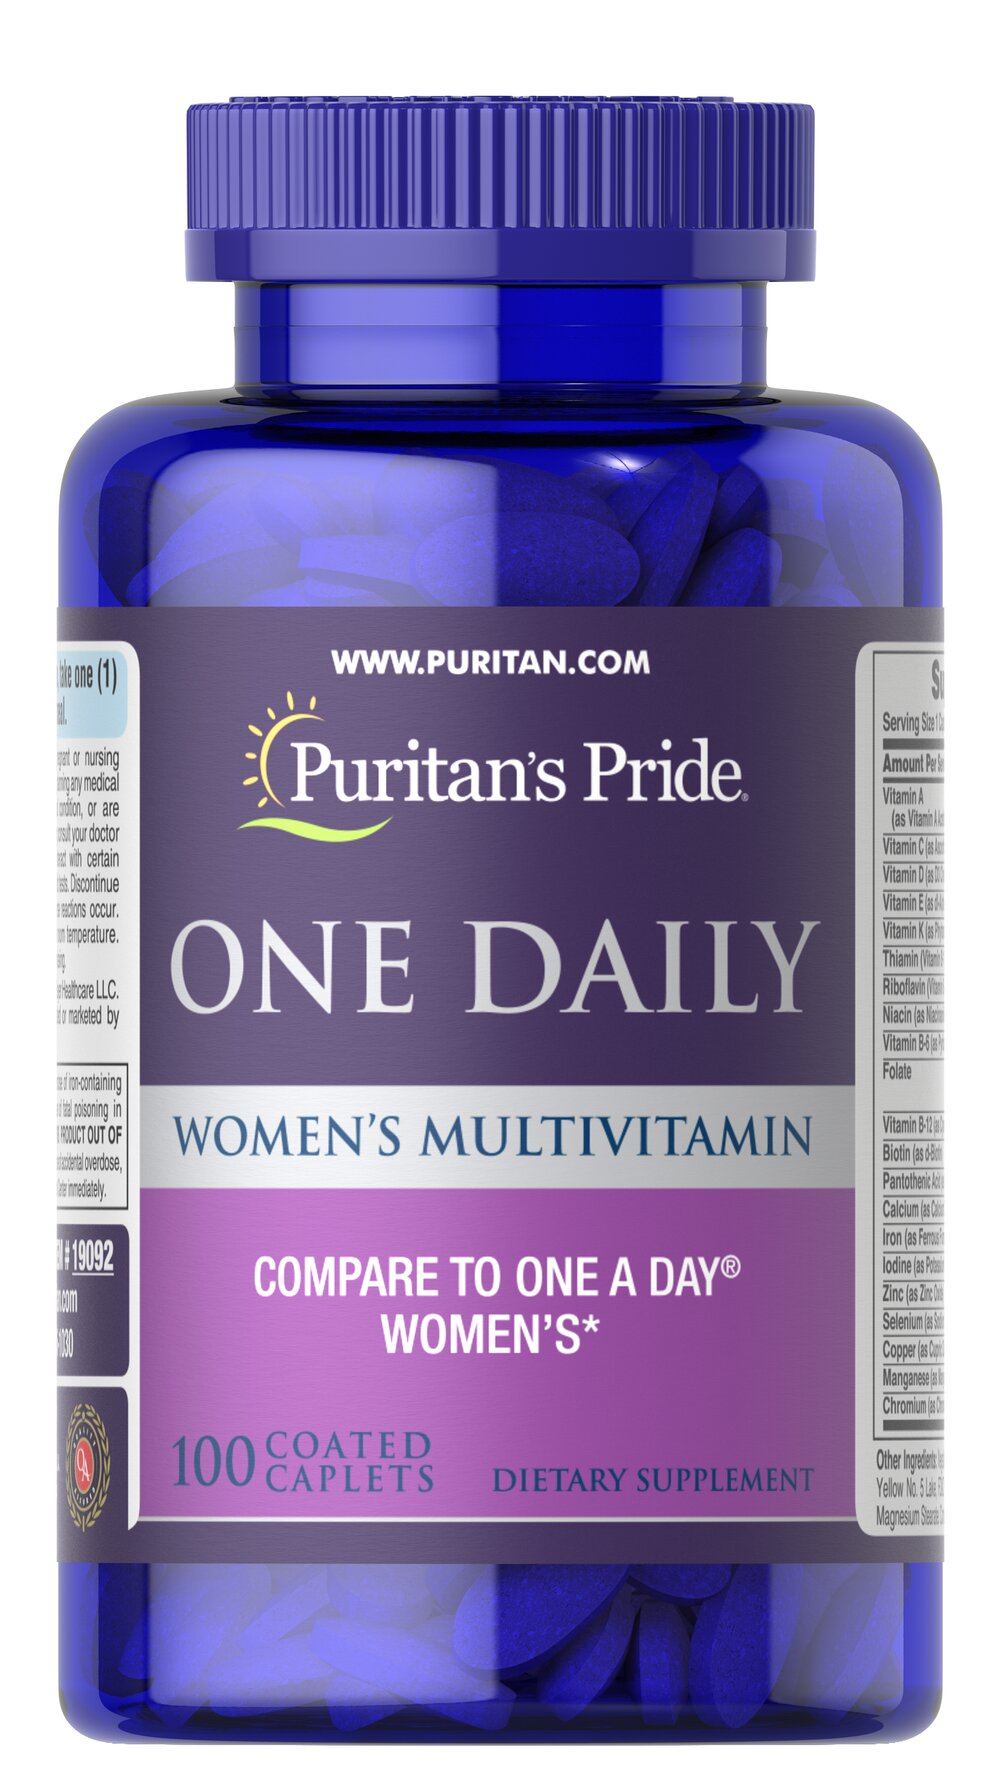 One Daily Women's Multivitamin  100 Caplets  $13.99